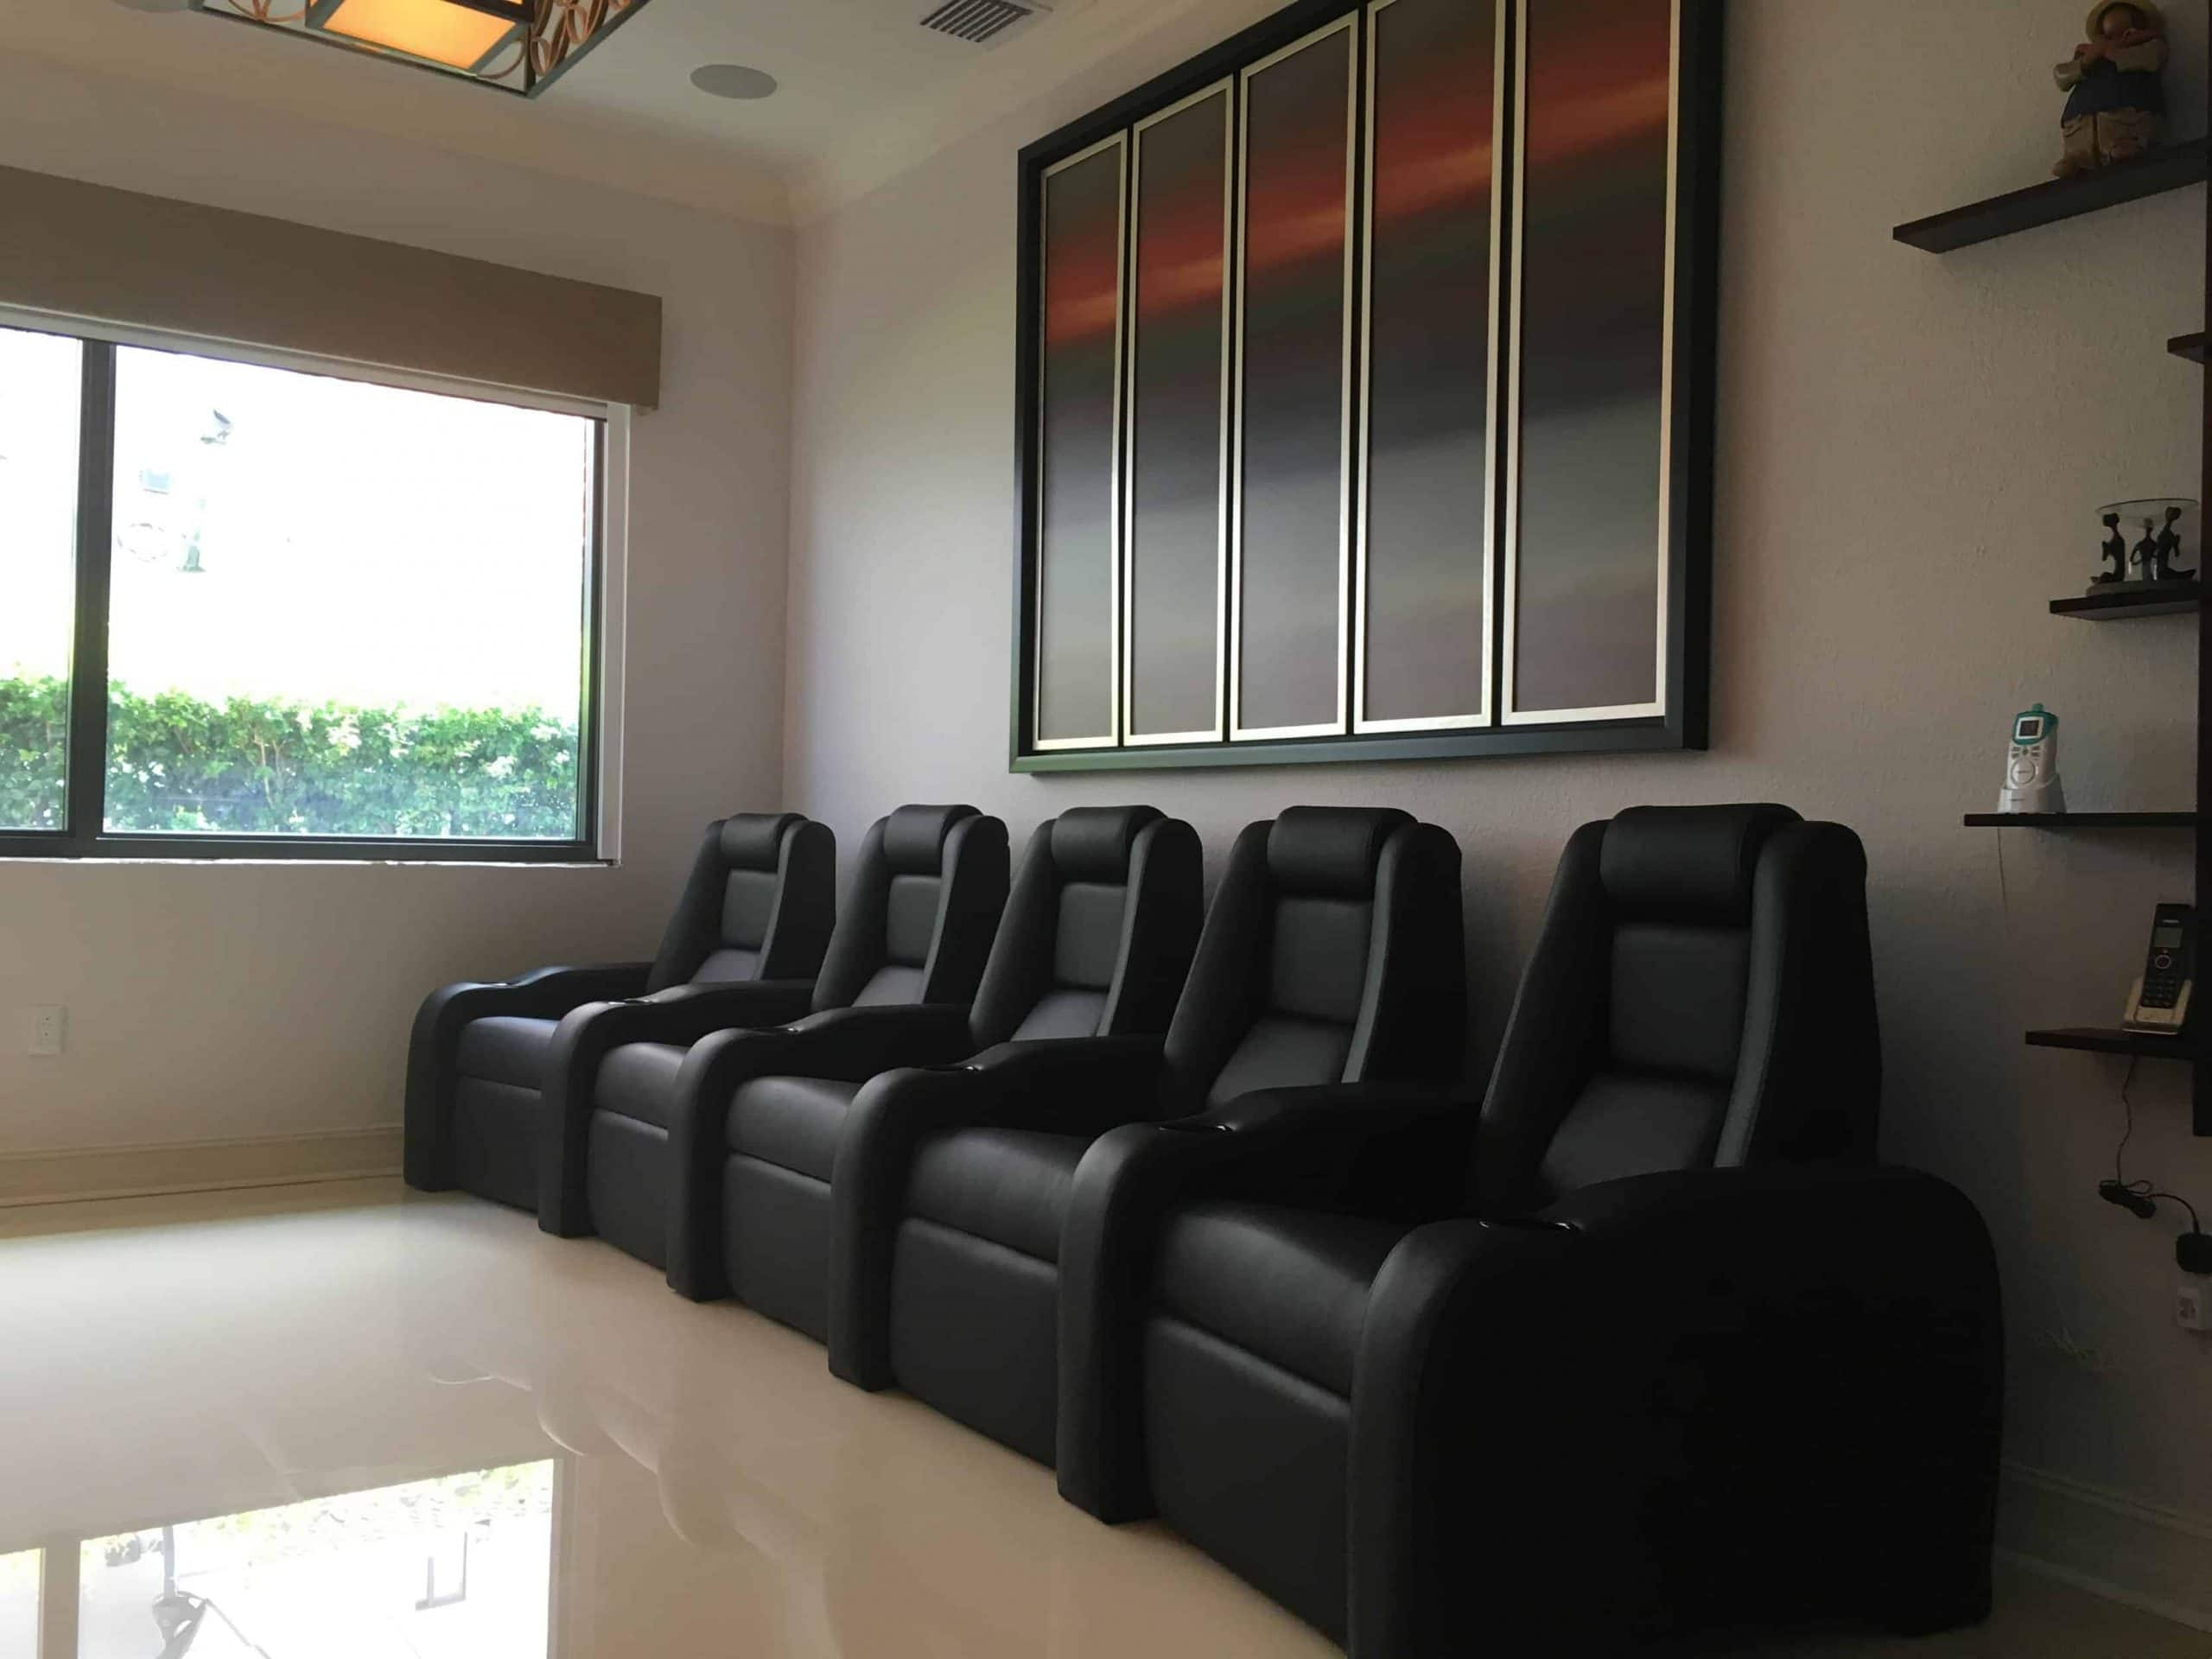 Media Room Chairs Inspiration Elite Home Theater Seating